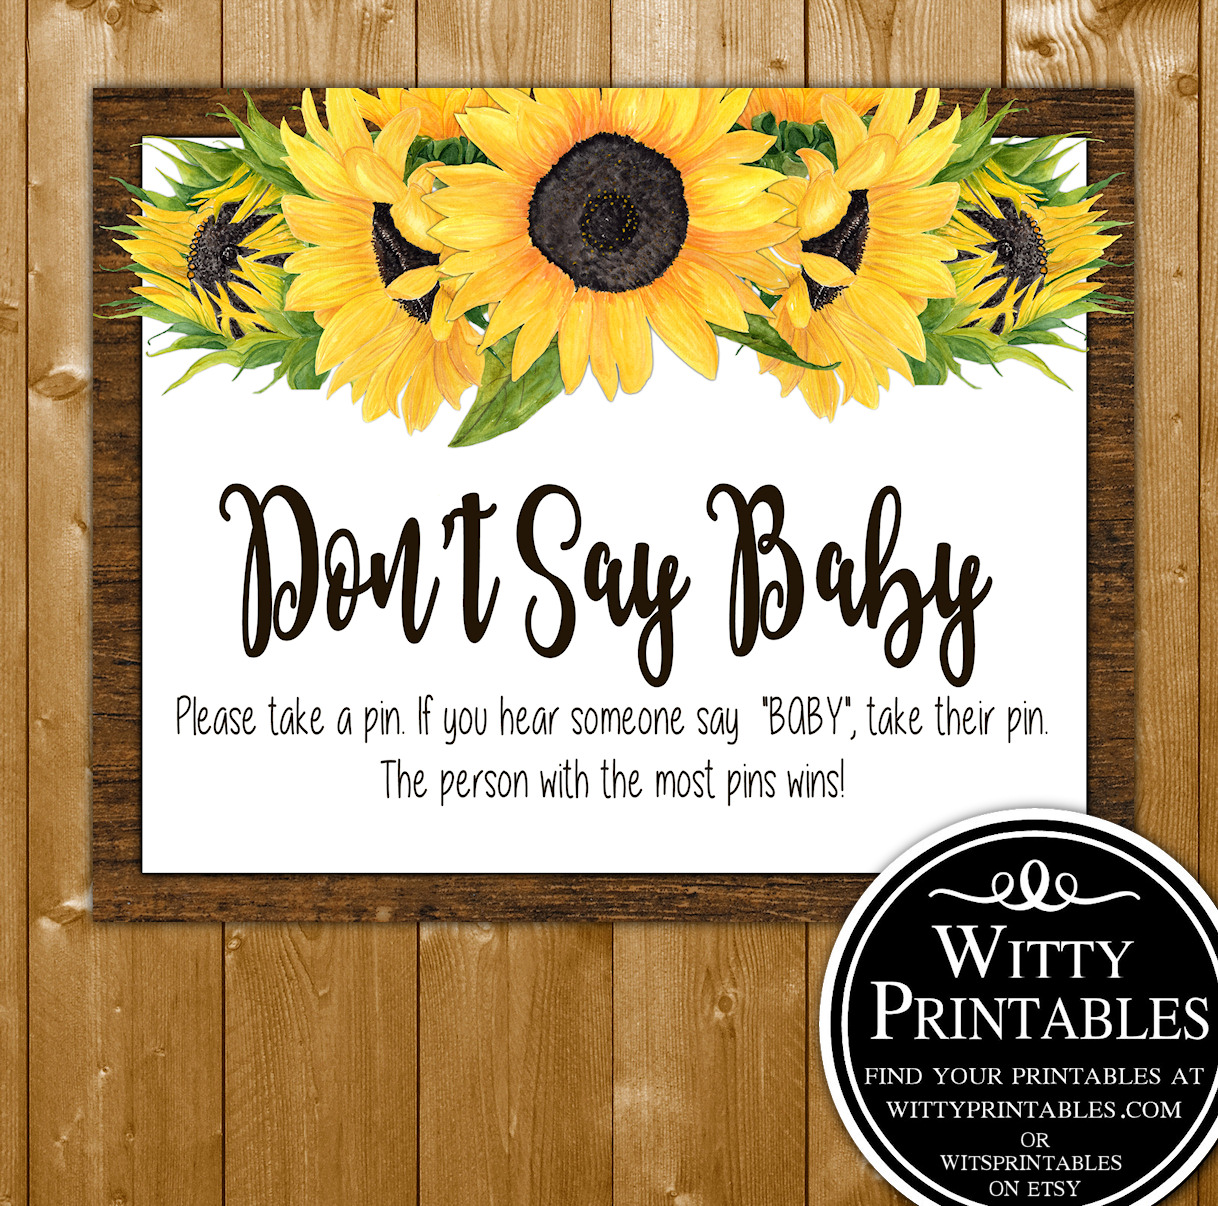 63ea96b0a899d Don't Say Baby - Baby Shower Game - Sunflowers Theme